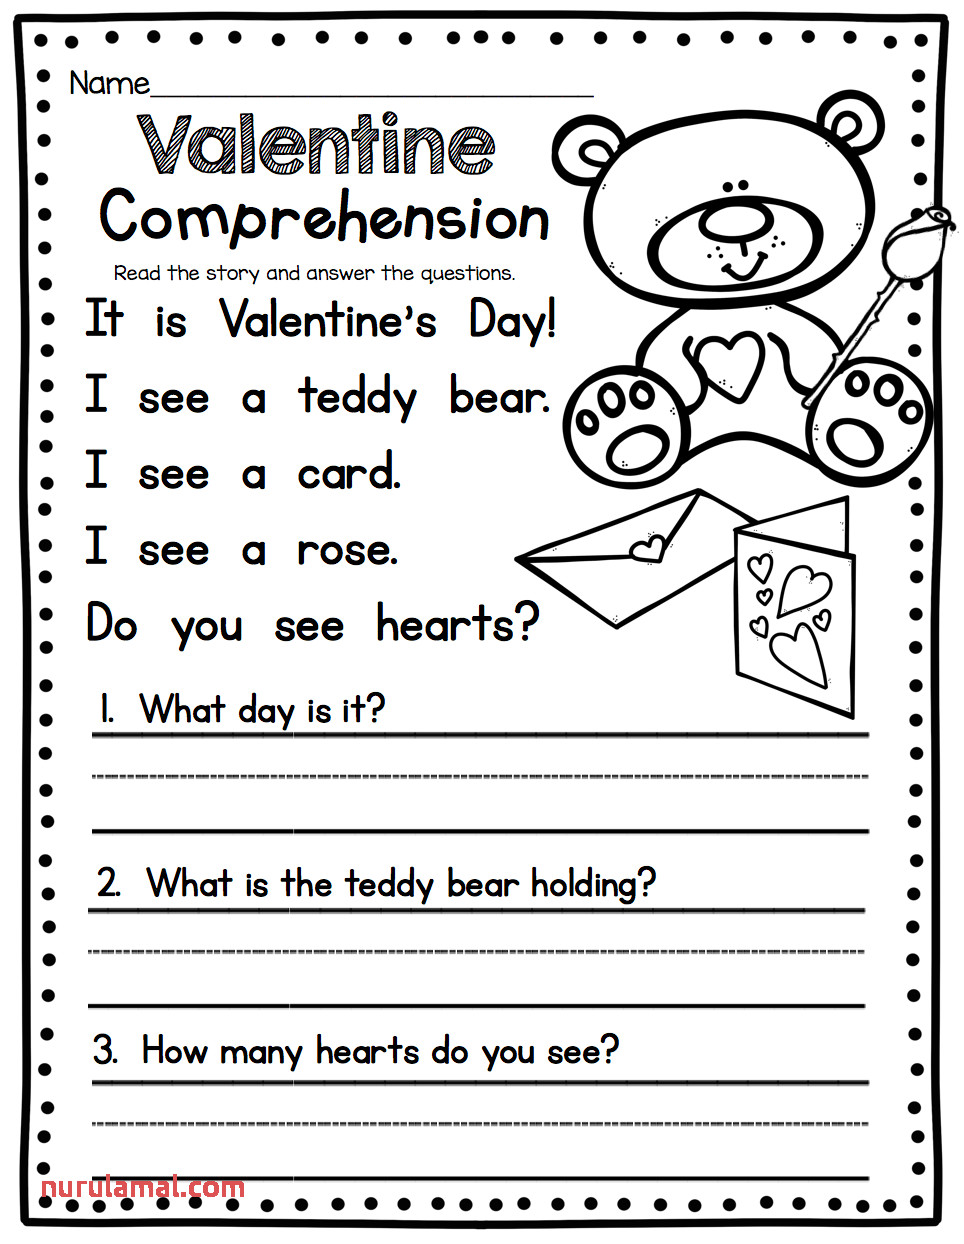 Worksheet Ideas 1st Grade English Worksheets Valentine